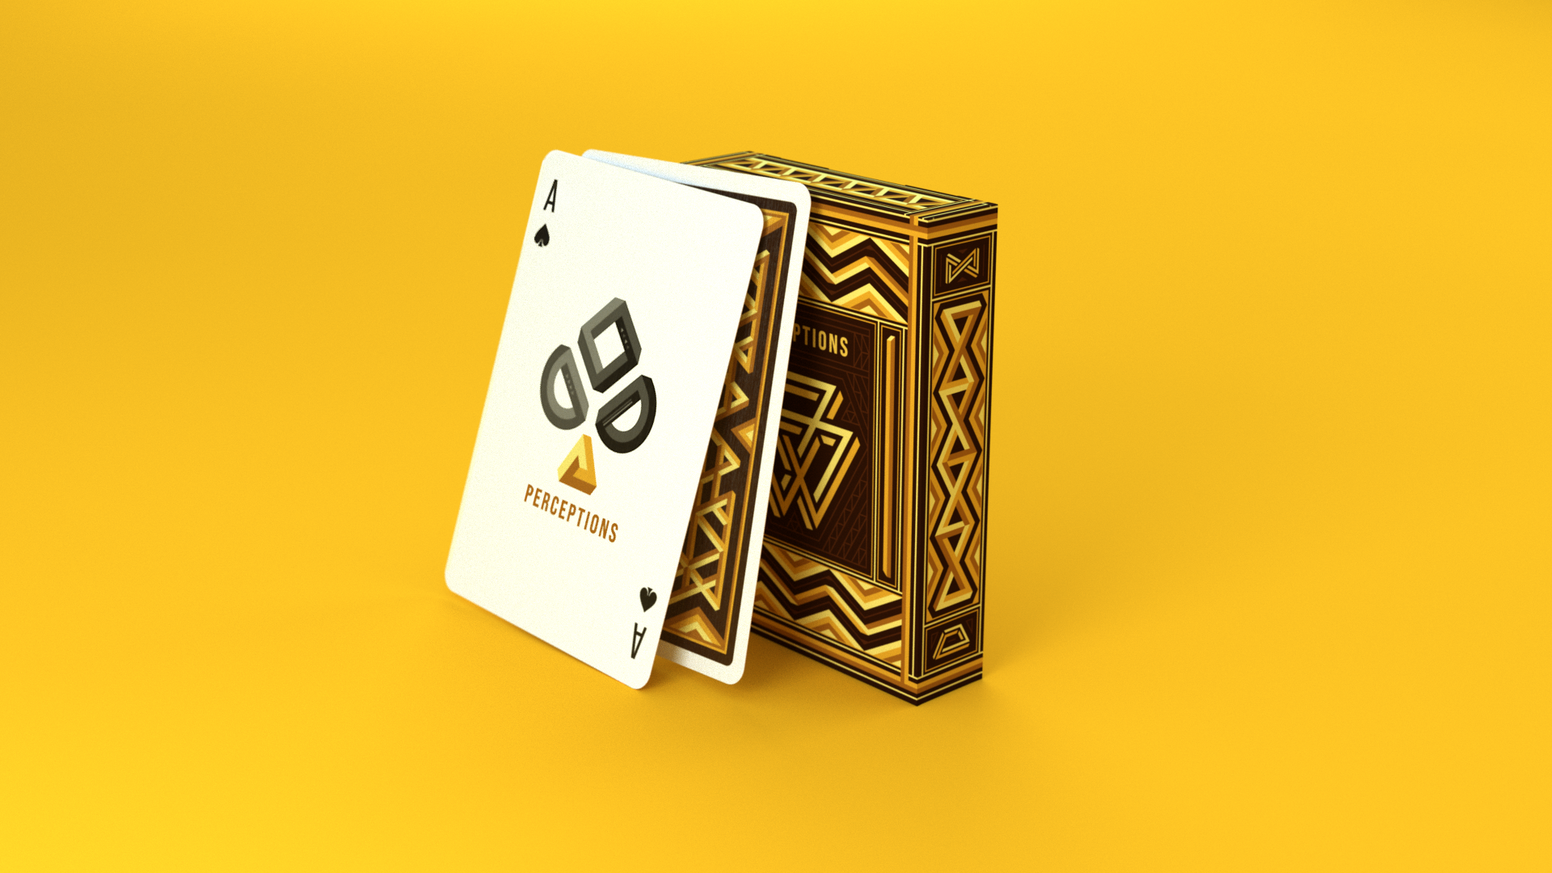 Custom playing cards featuring impossible geometry, inspired by the works of M.C. Escher. Printed by the USPCC.